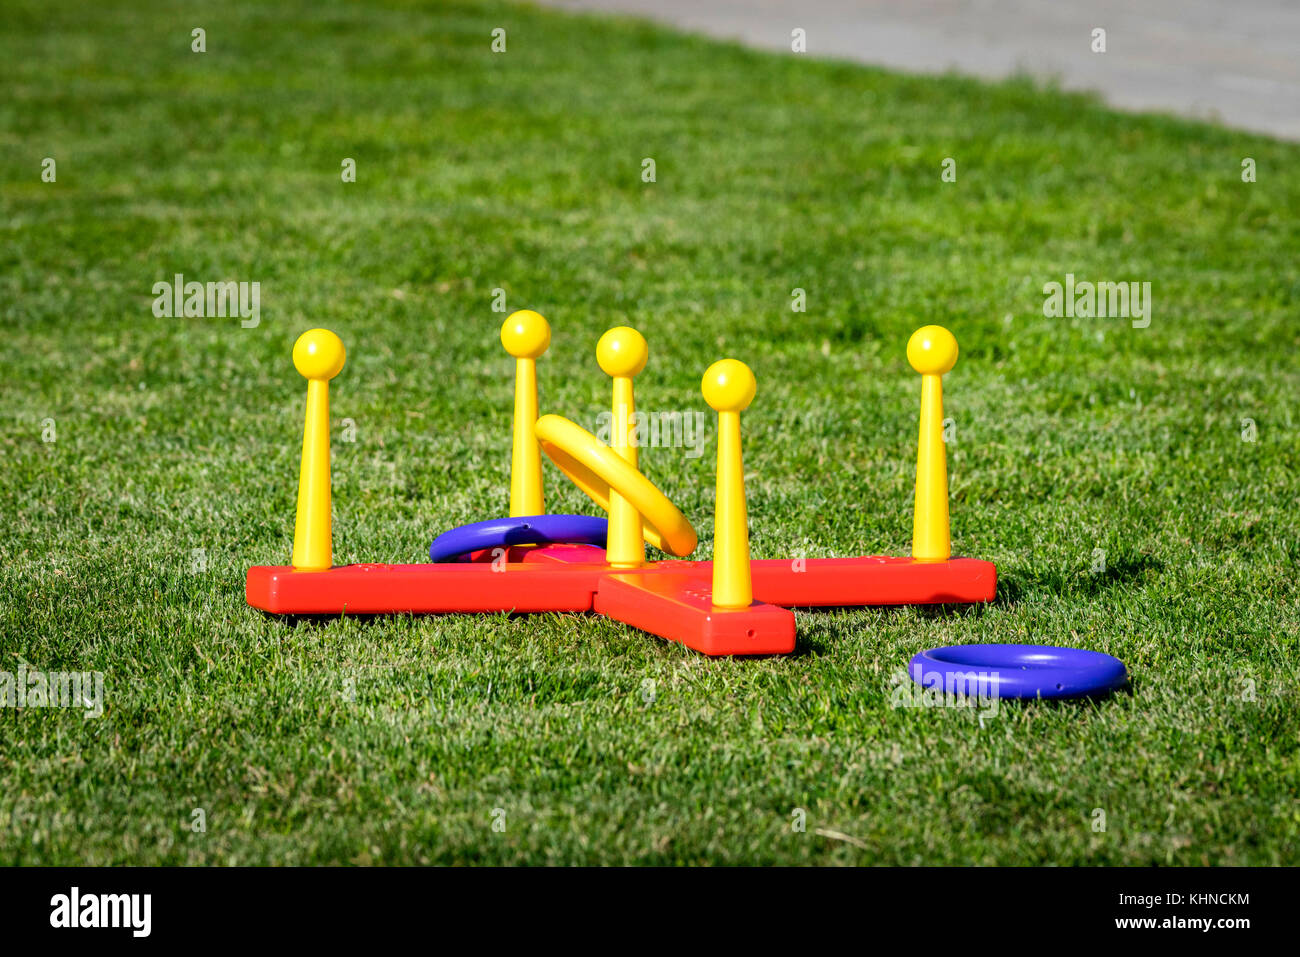 Outdoor ring game often used as an activity in the backyard in the summer - Stock Image